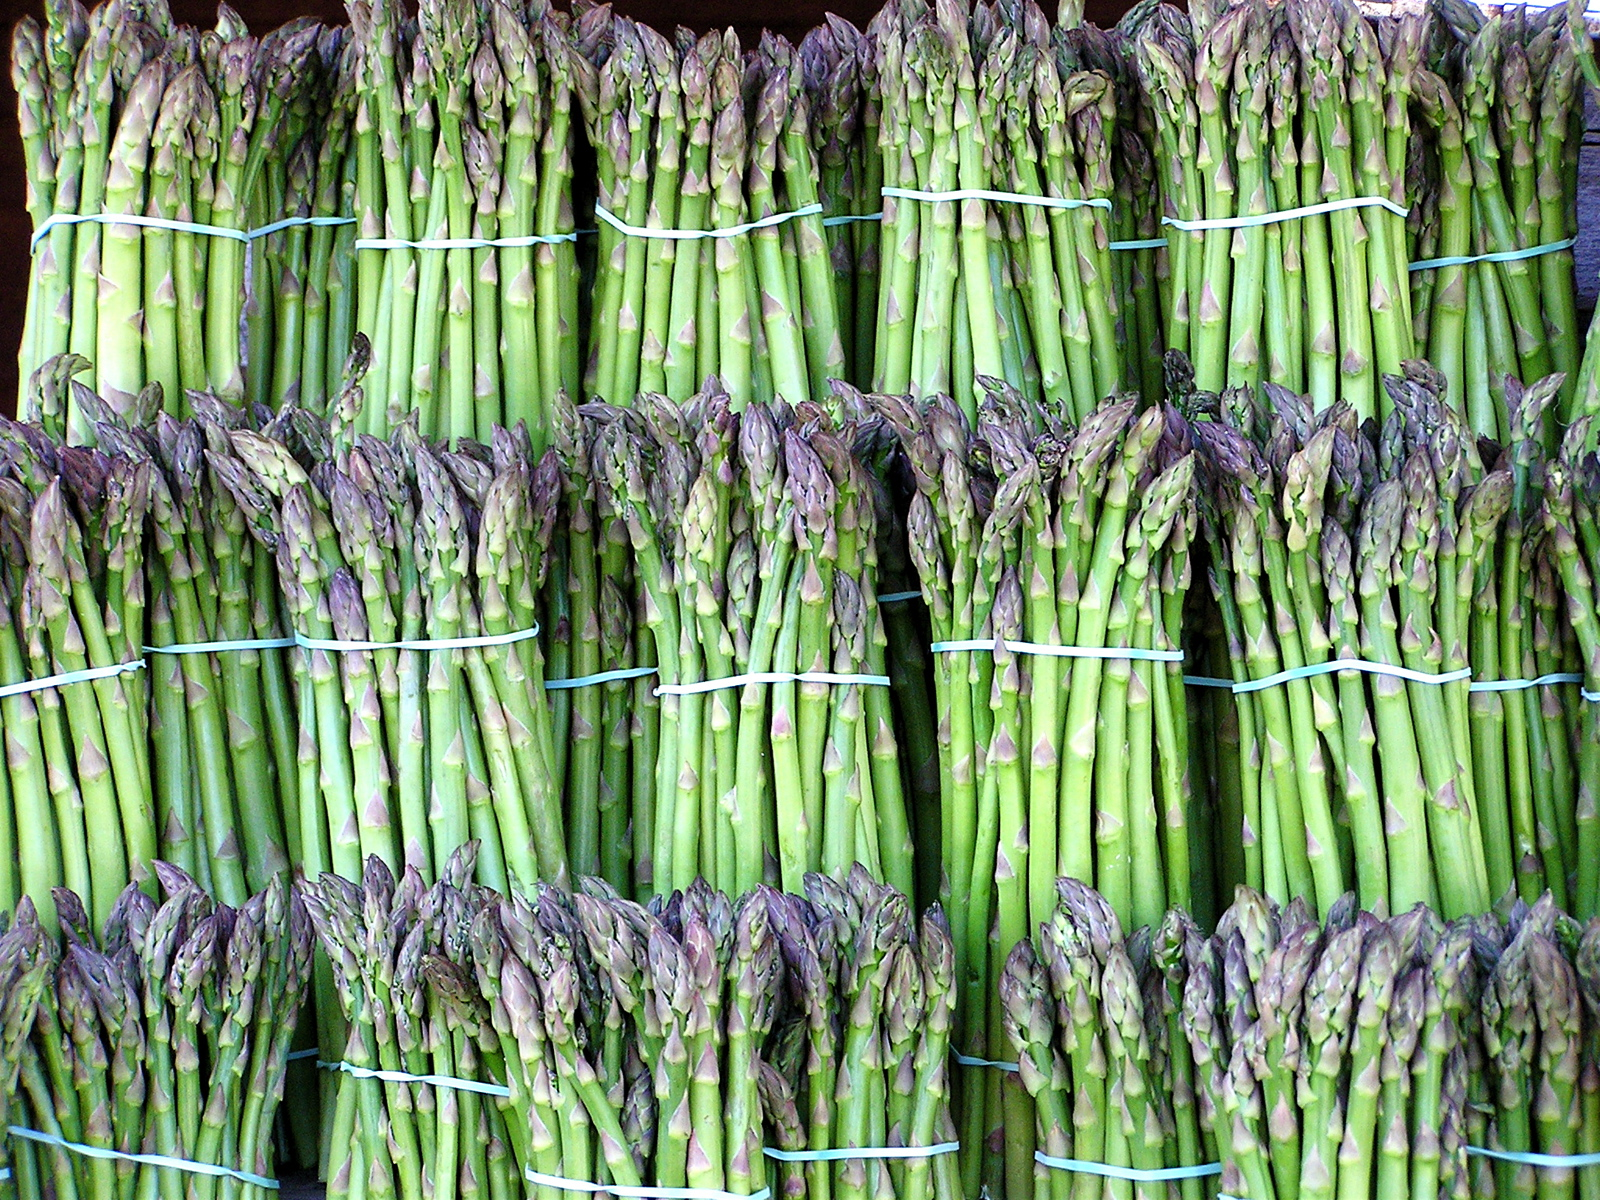 File:Asparagus image.jpg - Wikipedia, the free encyclopedia